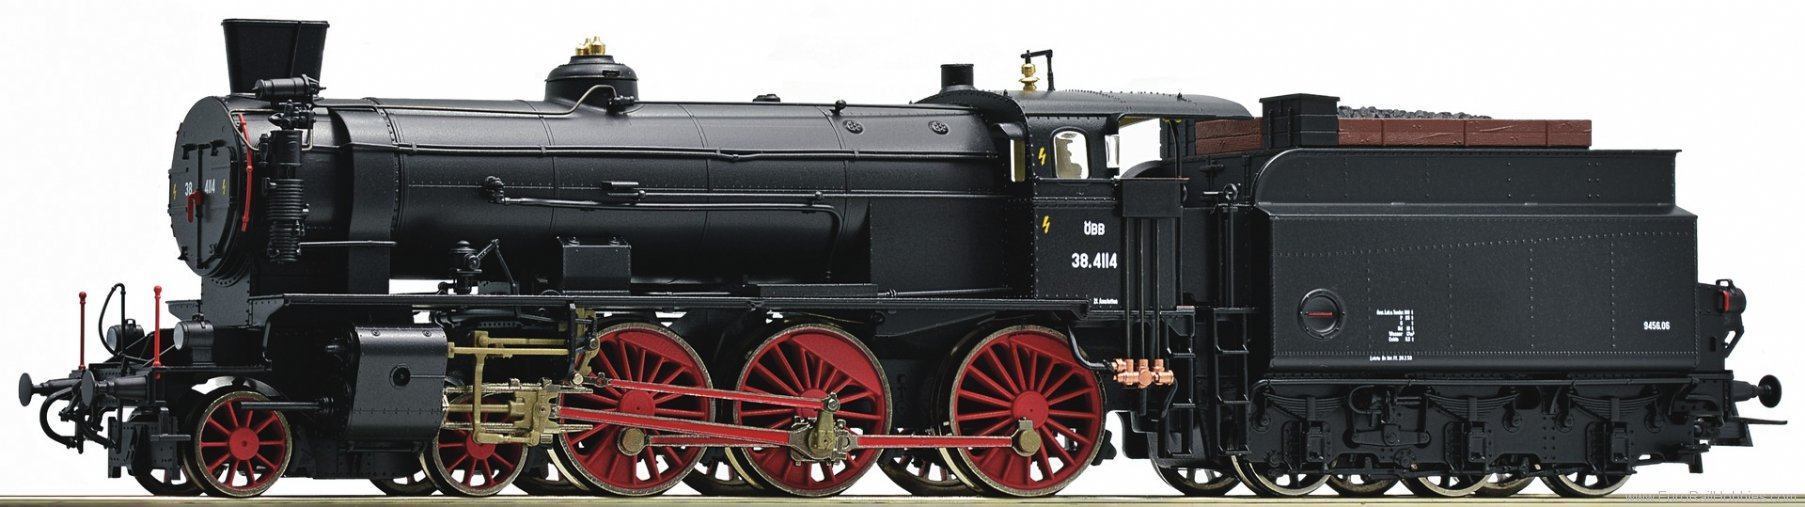 Roco 72120 Steam locomotive series 38, OBB